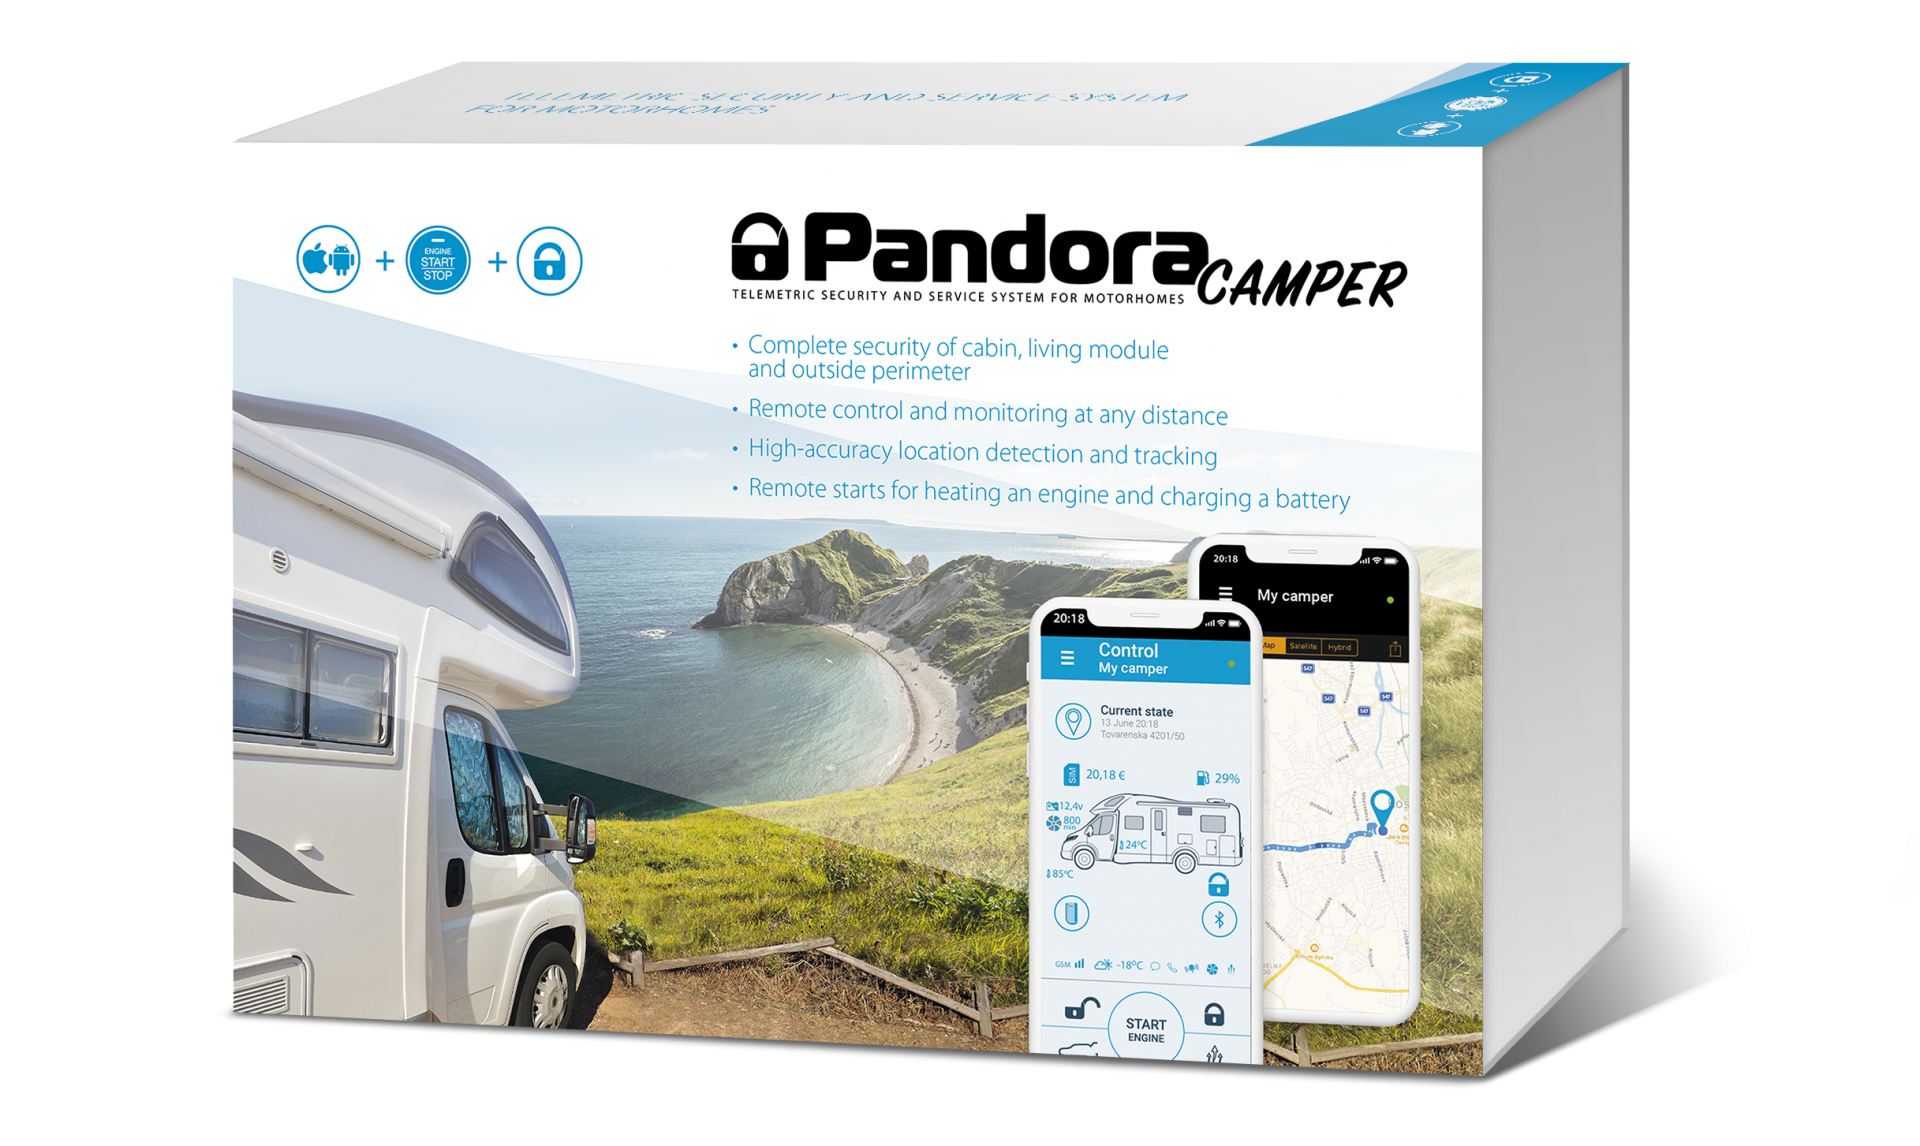 Pandora Camper alarm which keeps you connected to your Motorhome (RV) through your smartphone. also